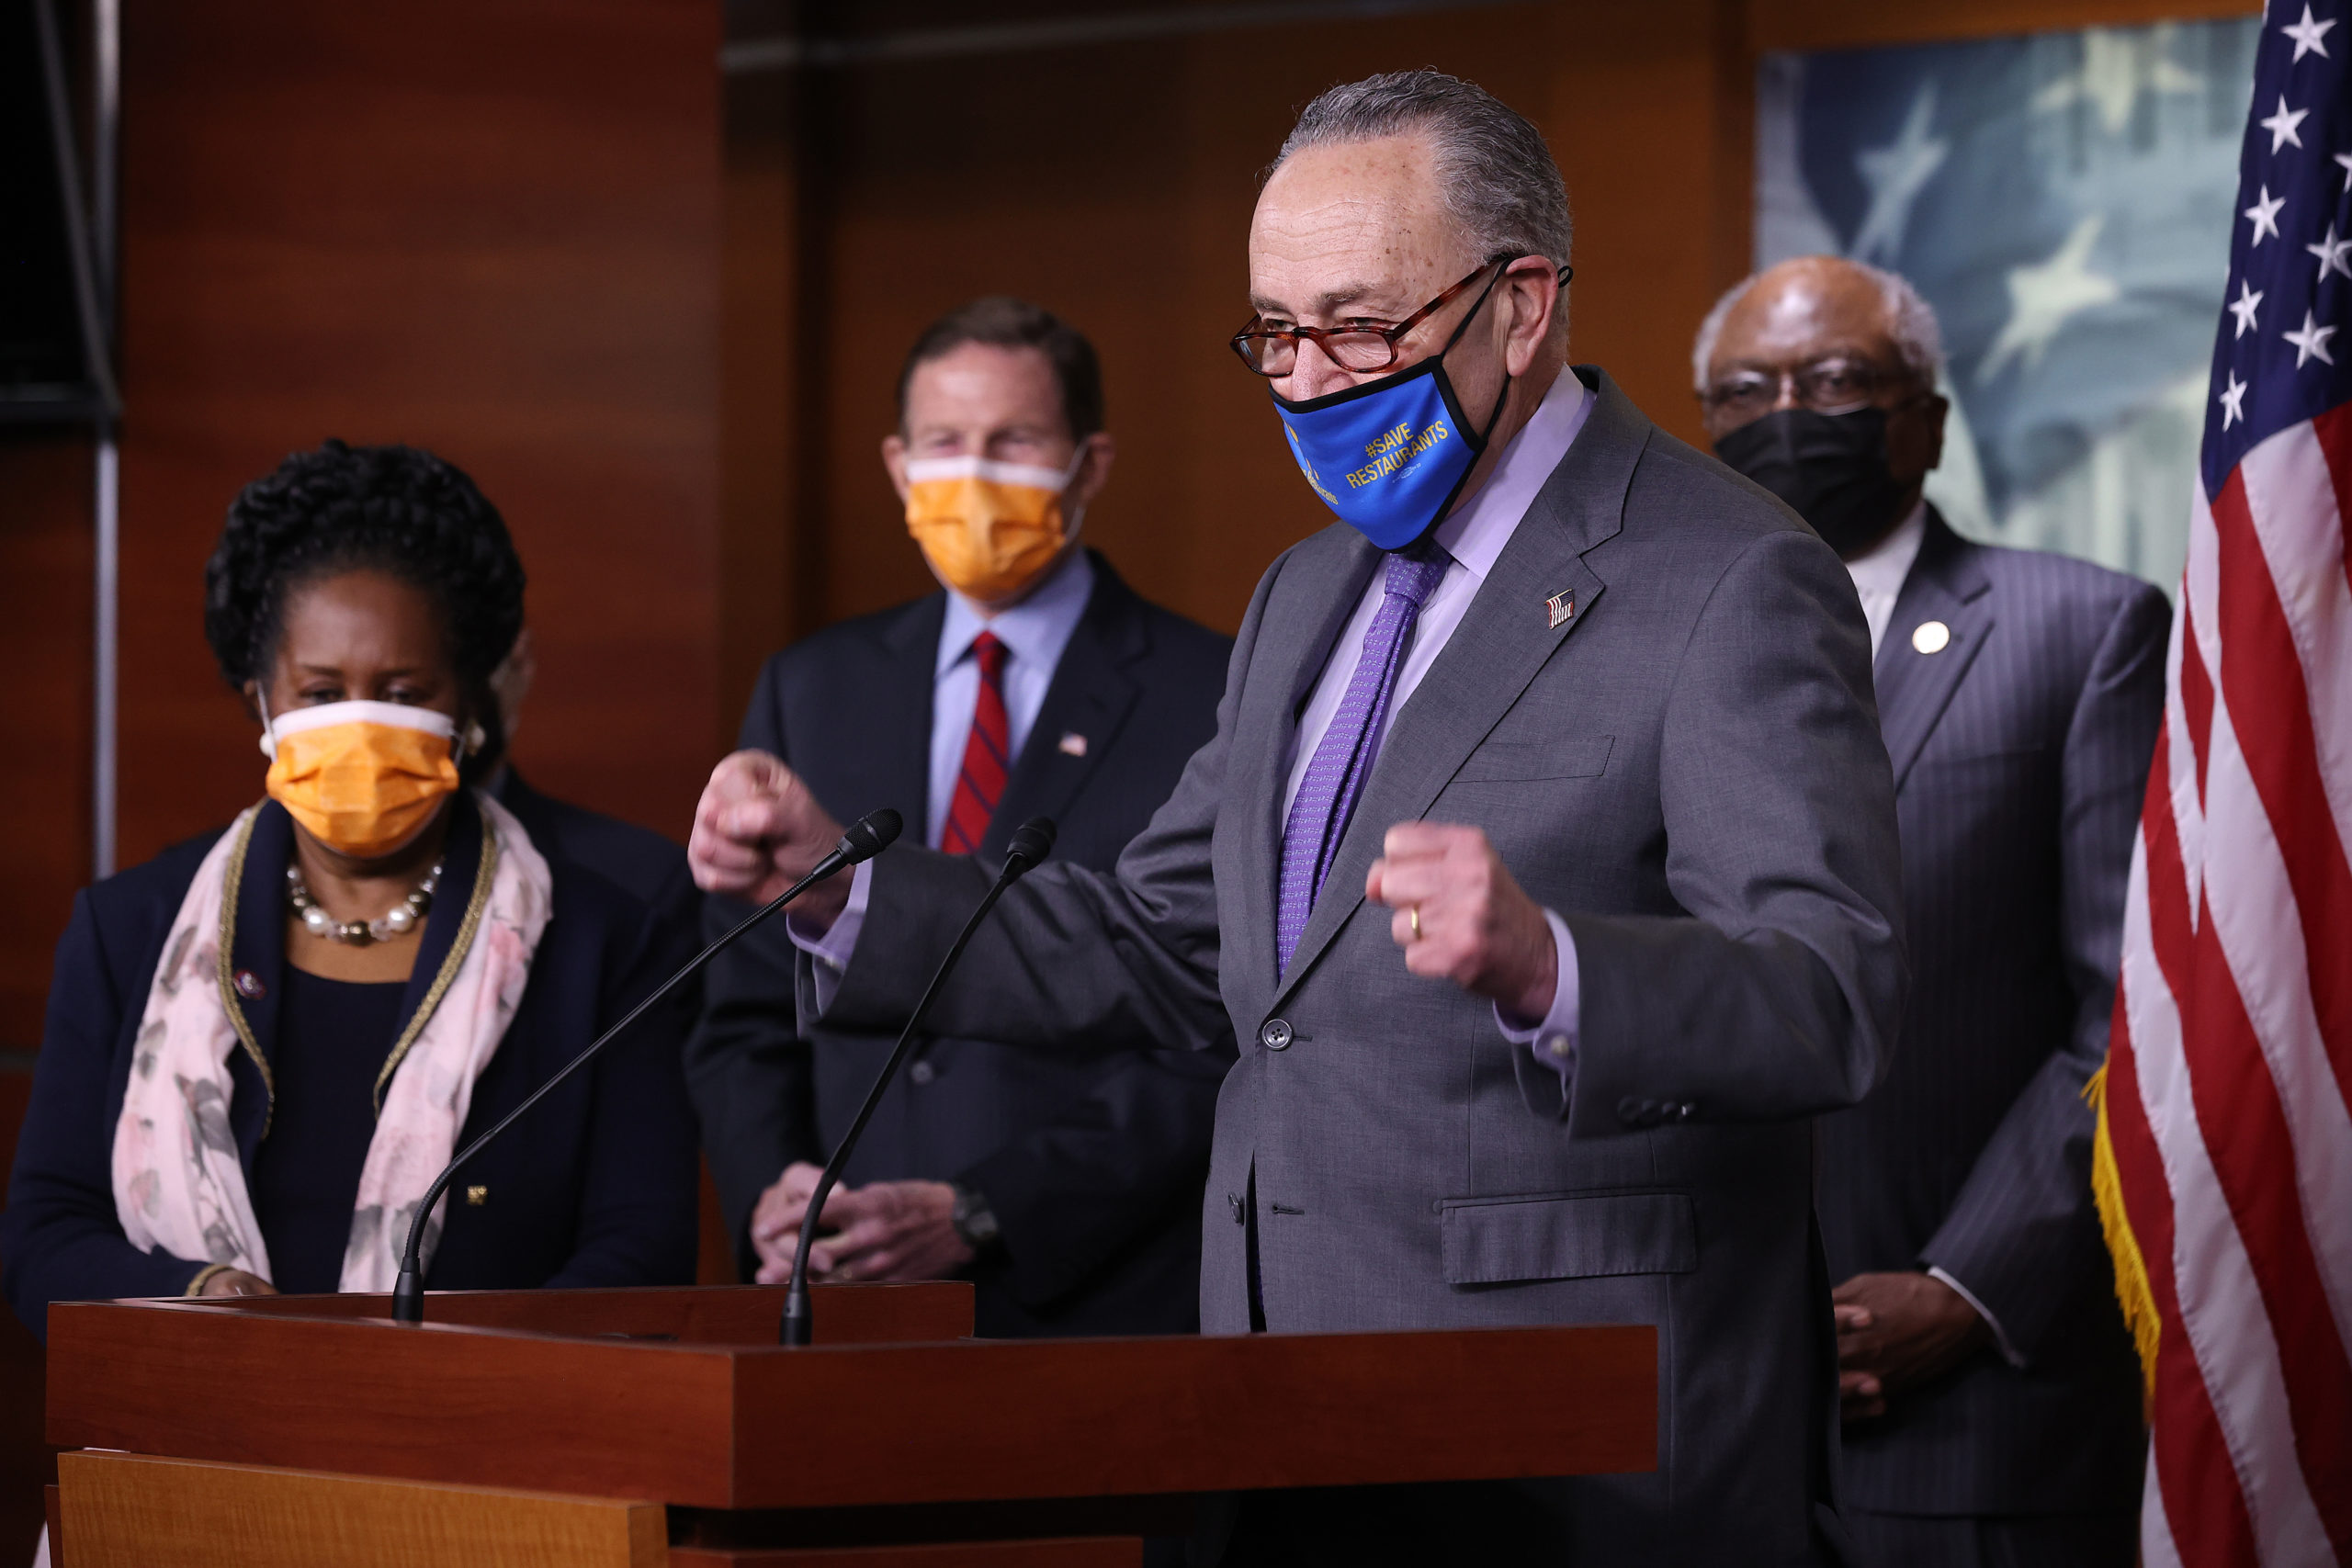 Democrats speak to the media after the House passed a massive coronavirus stimulus package one day earlier. (Chip Somodevilla/Getty Images)